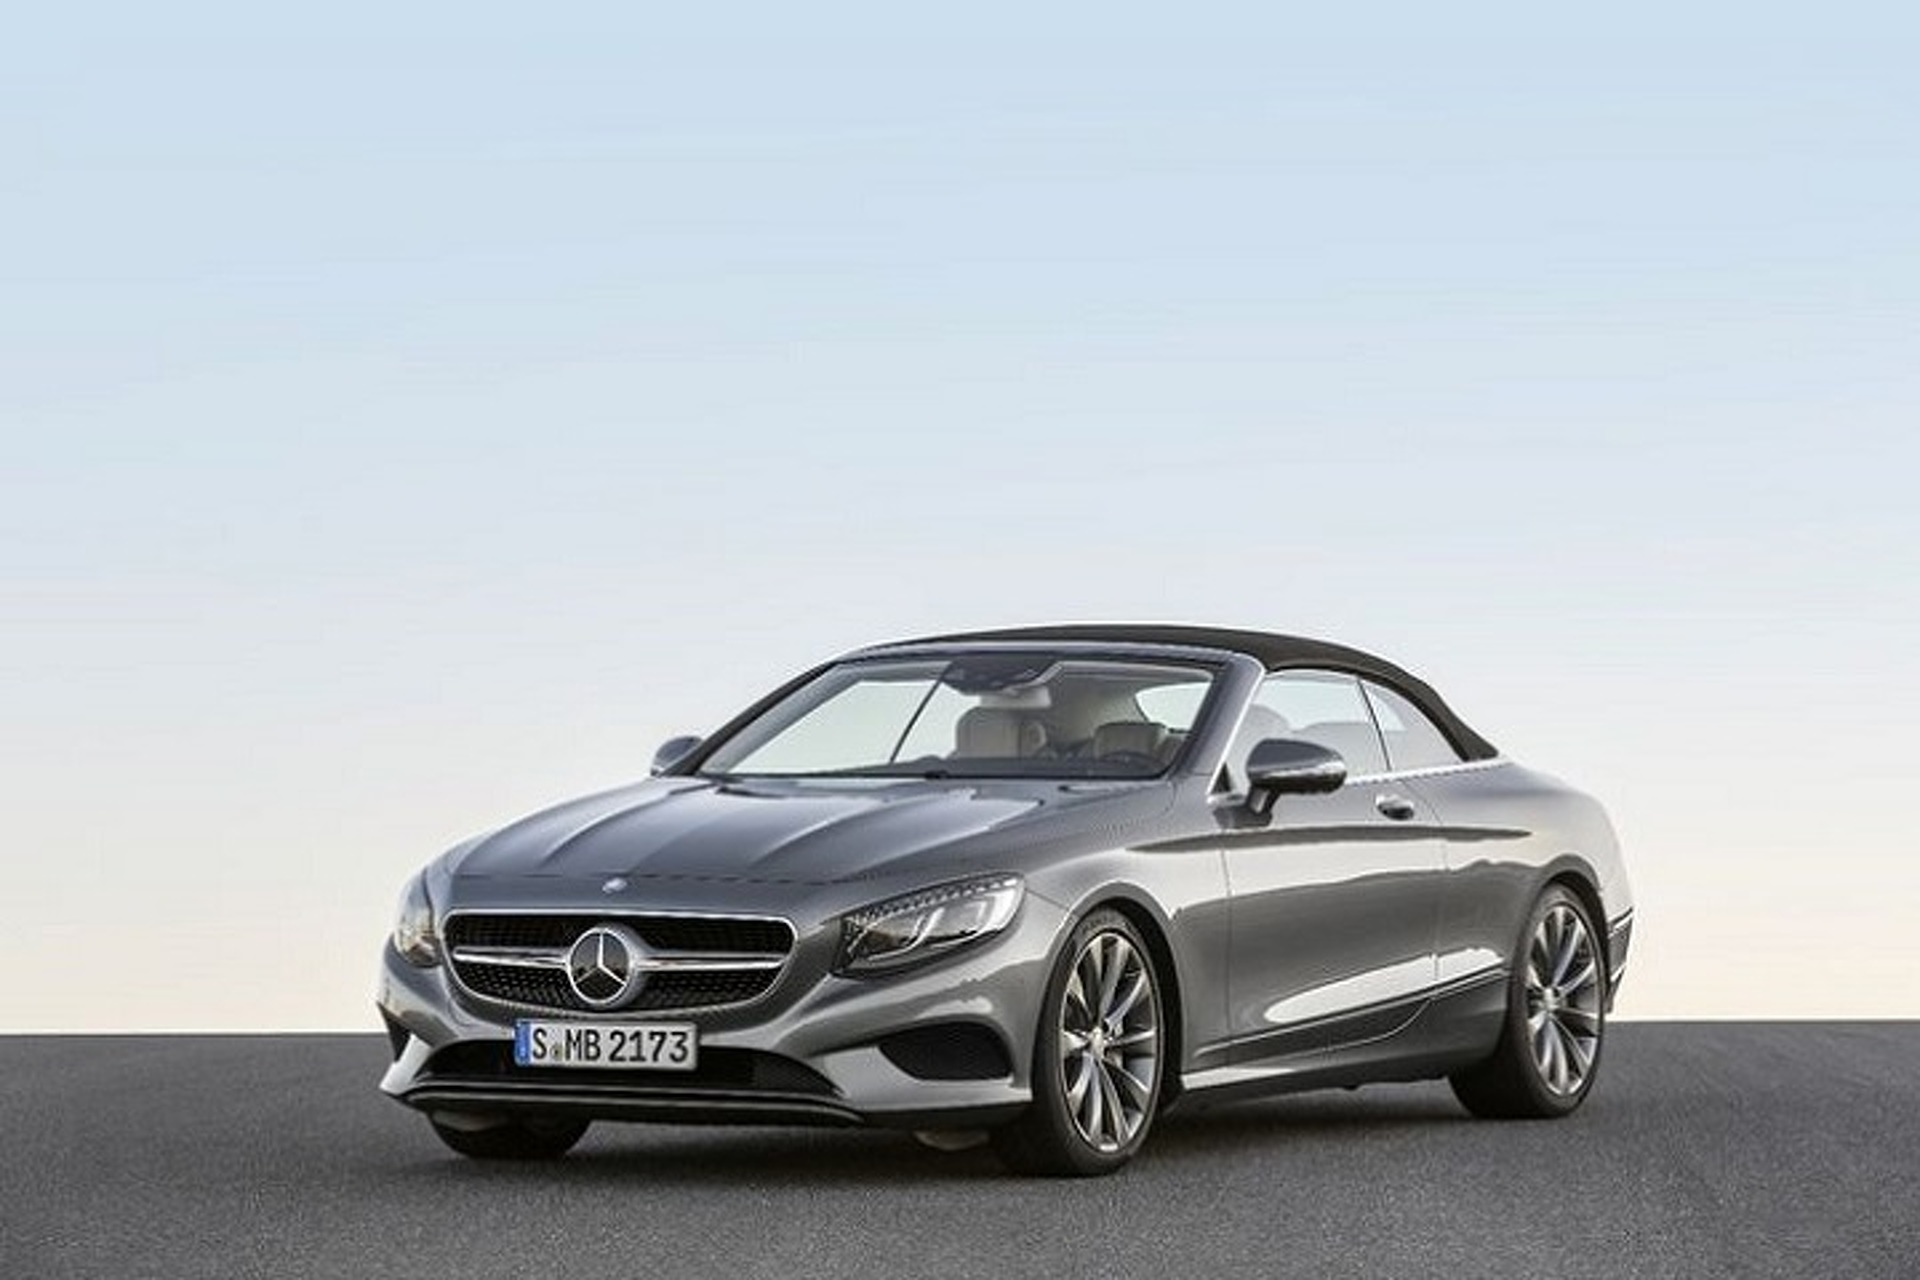 Mercedes S-Class Cabriolet Is The Land-Yacht We've Been Waiting For